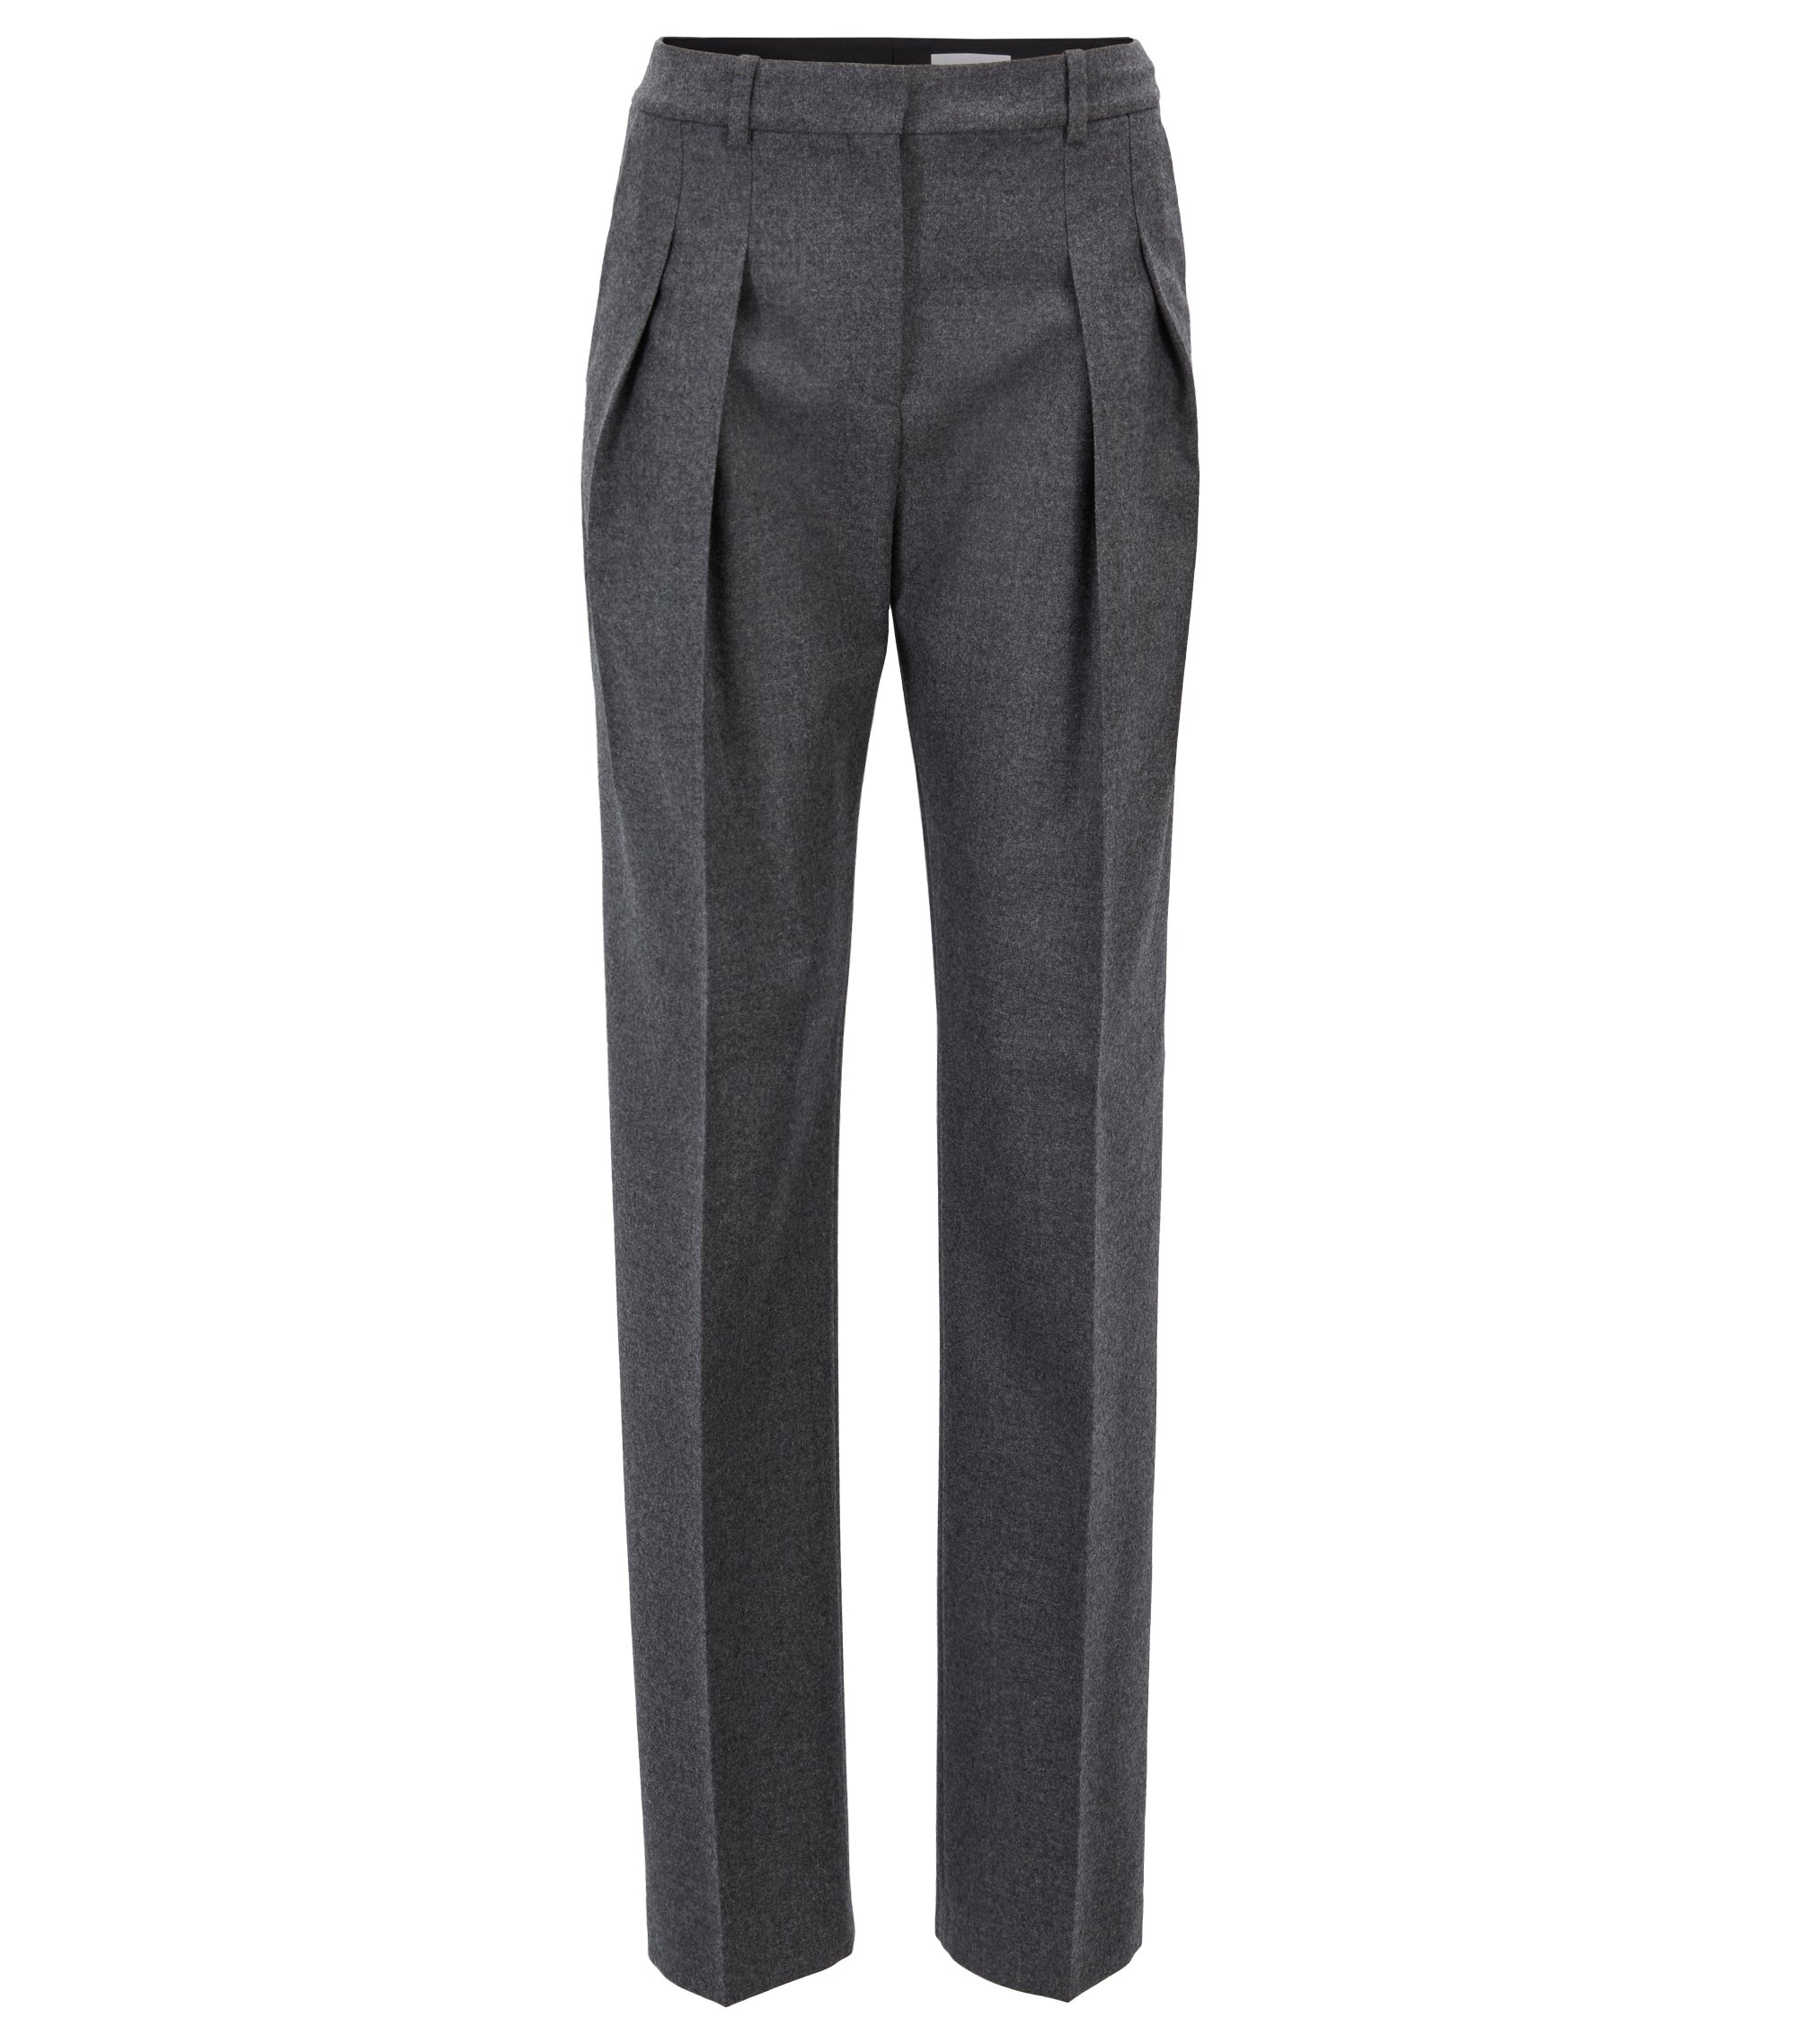 Extra-long wide-leg trousers with pleated front, Anthracite